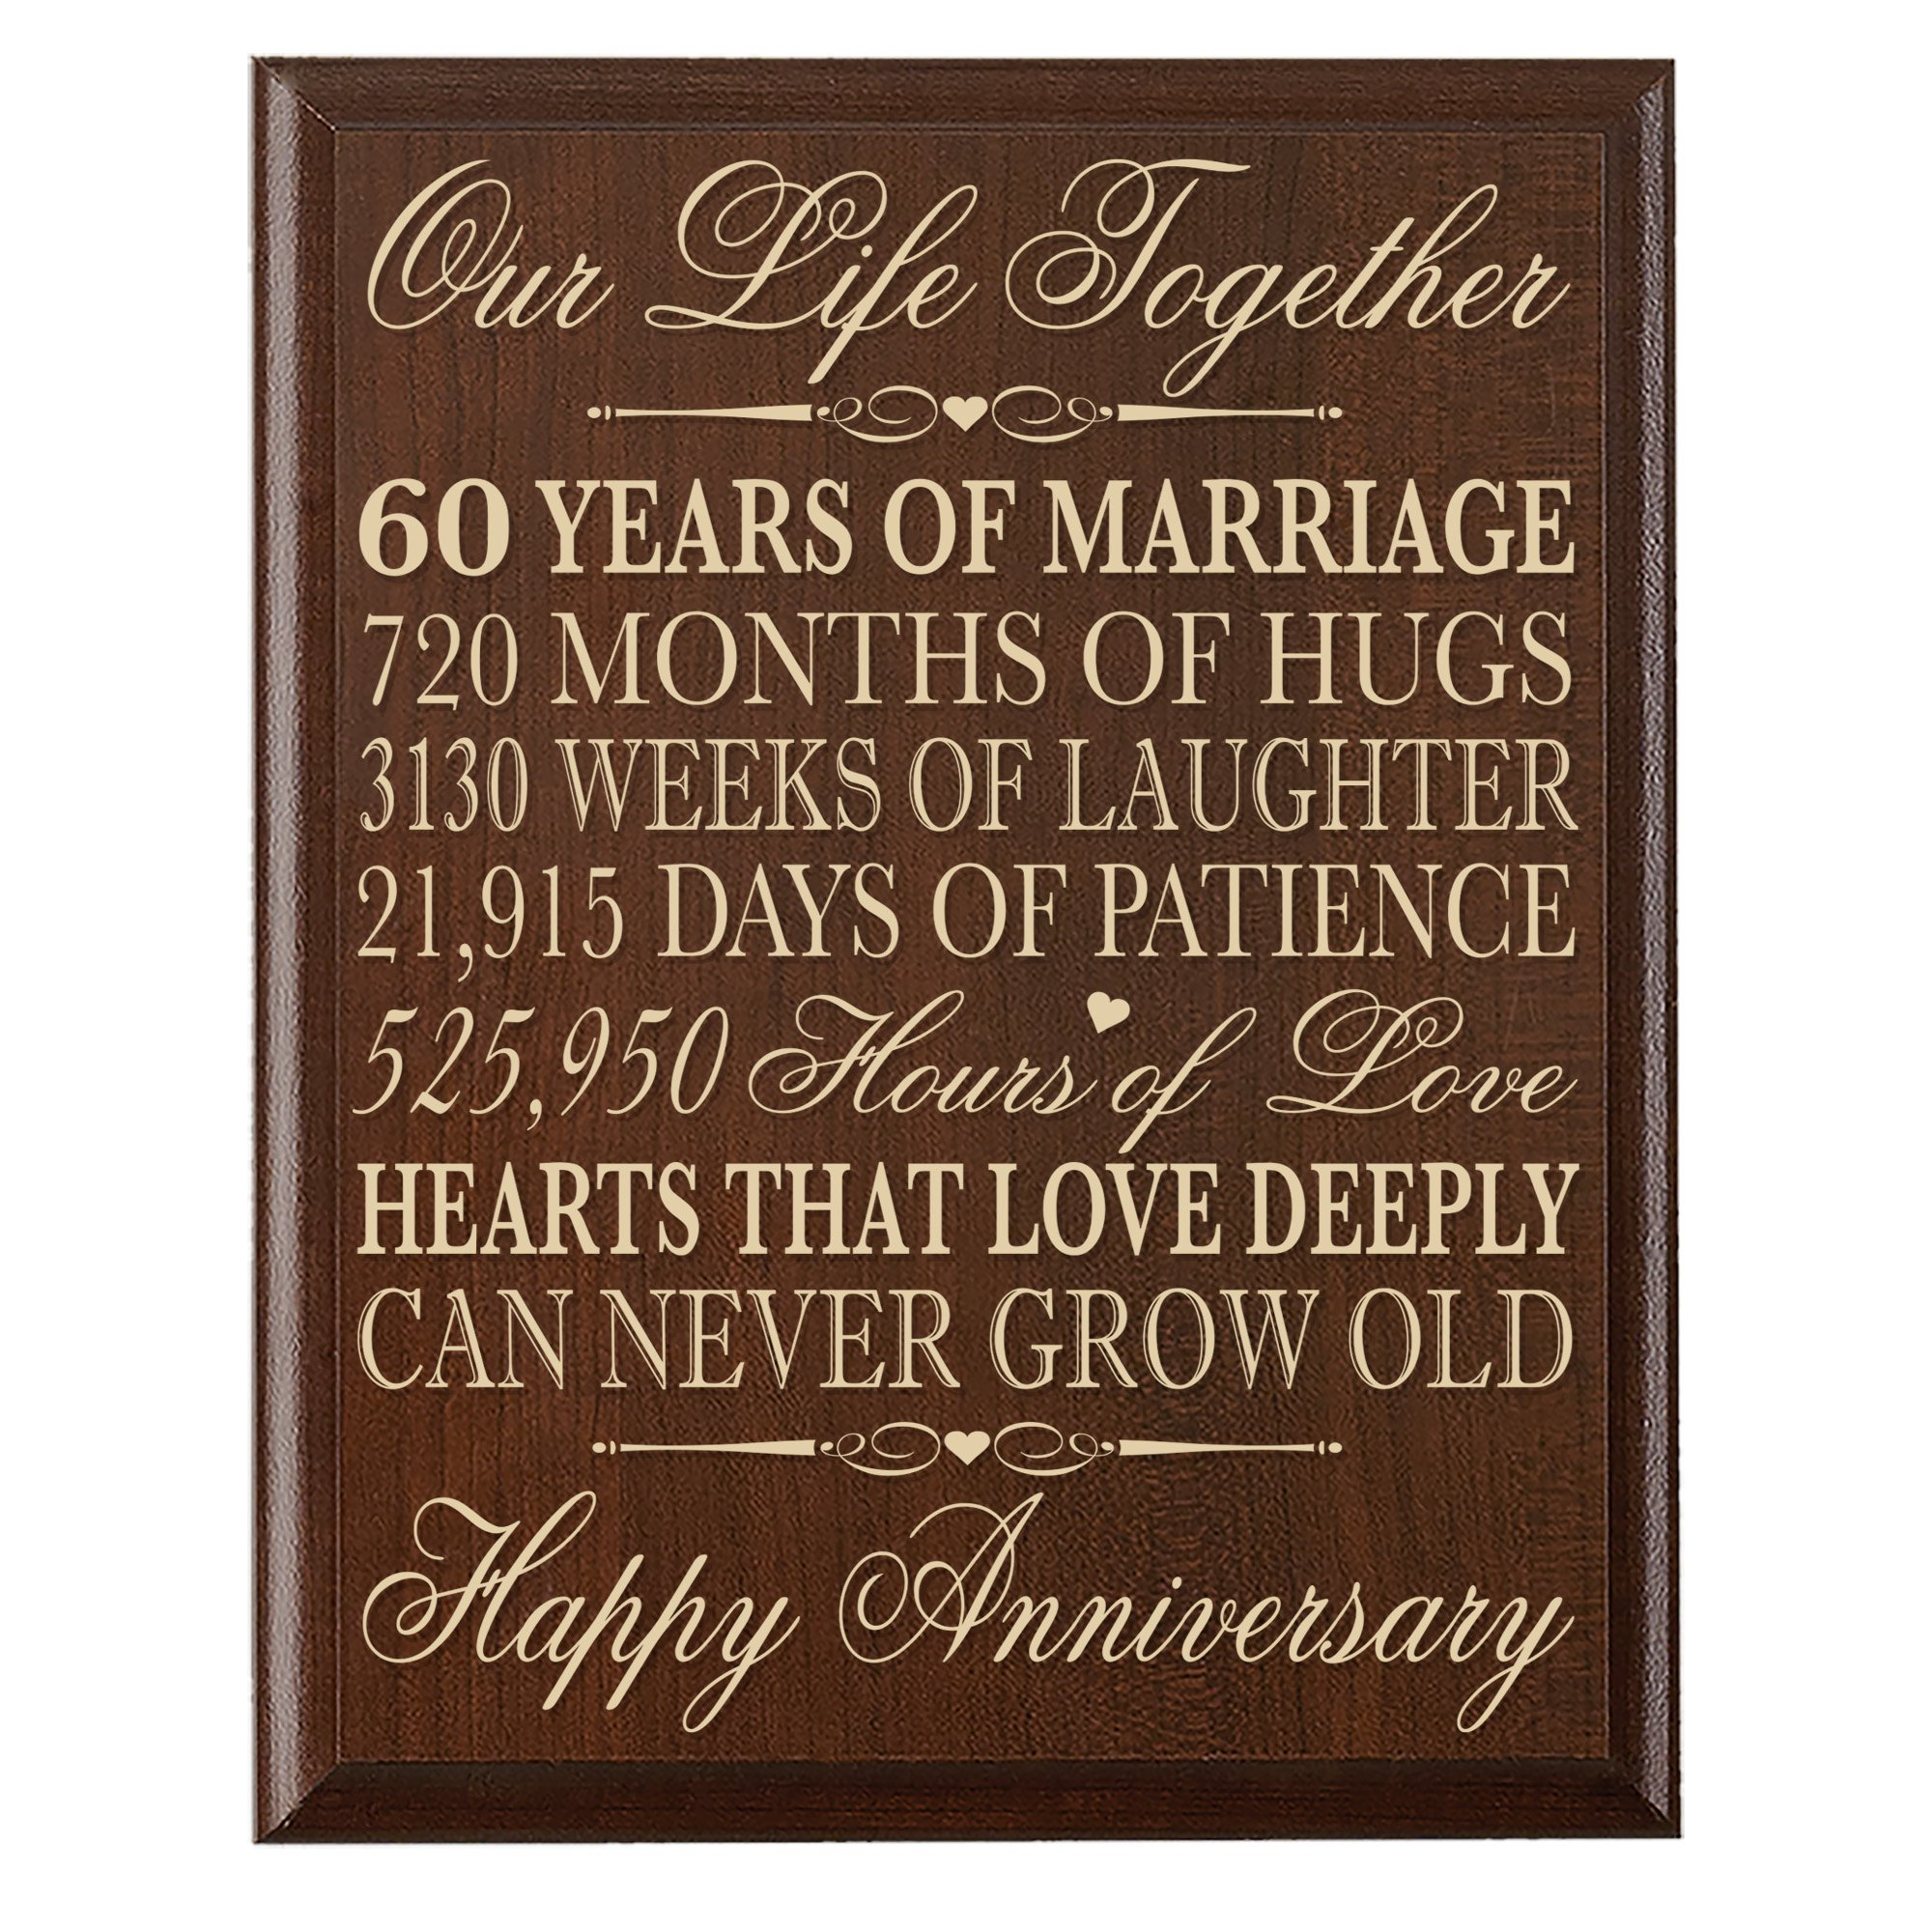 60th Wedding Anniversary Ideas: 60th Wedding Anniversary Wall Plaque Gifts For Couple